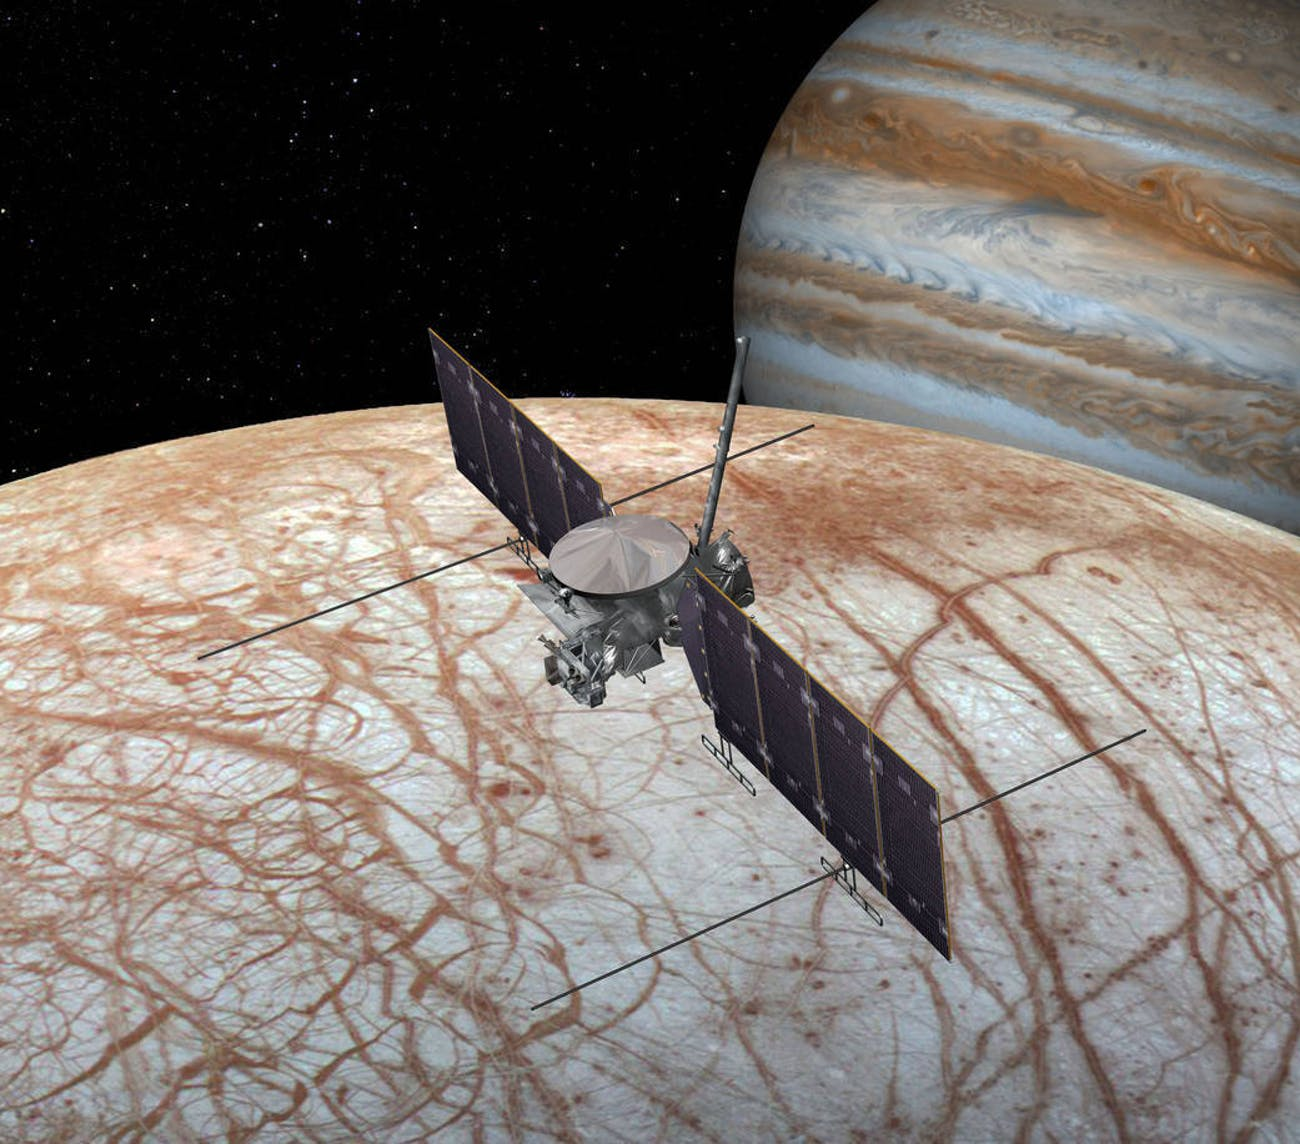 NASA found something interesting on Europa, it might find more with an unmanned probe, like the one depicted here.